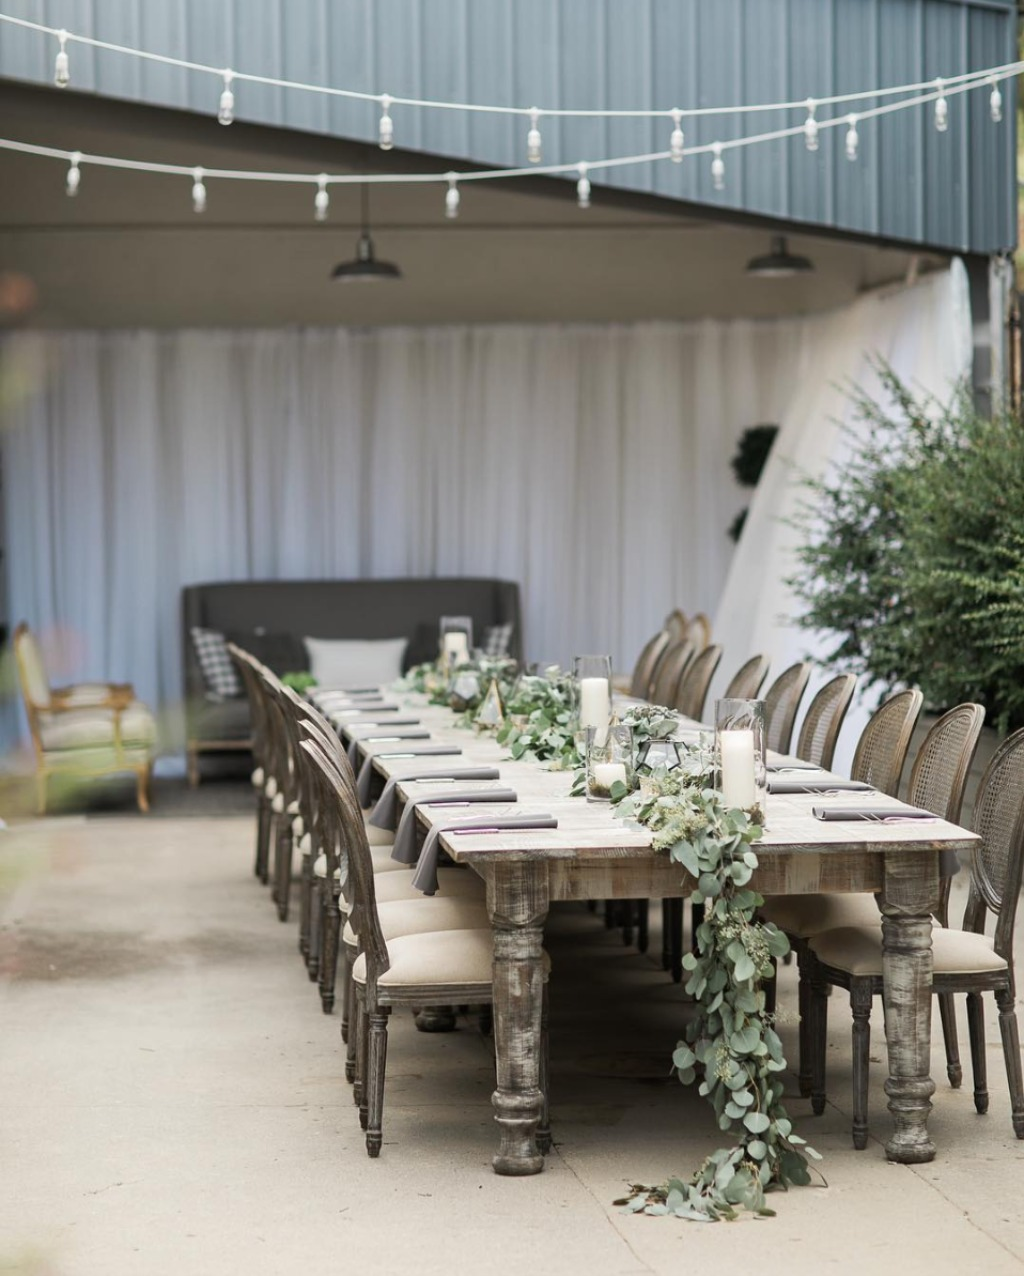 Garden Party with our Louis Chairs & Greyson Dining Table